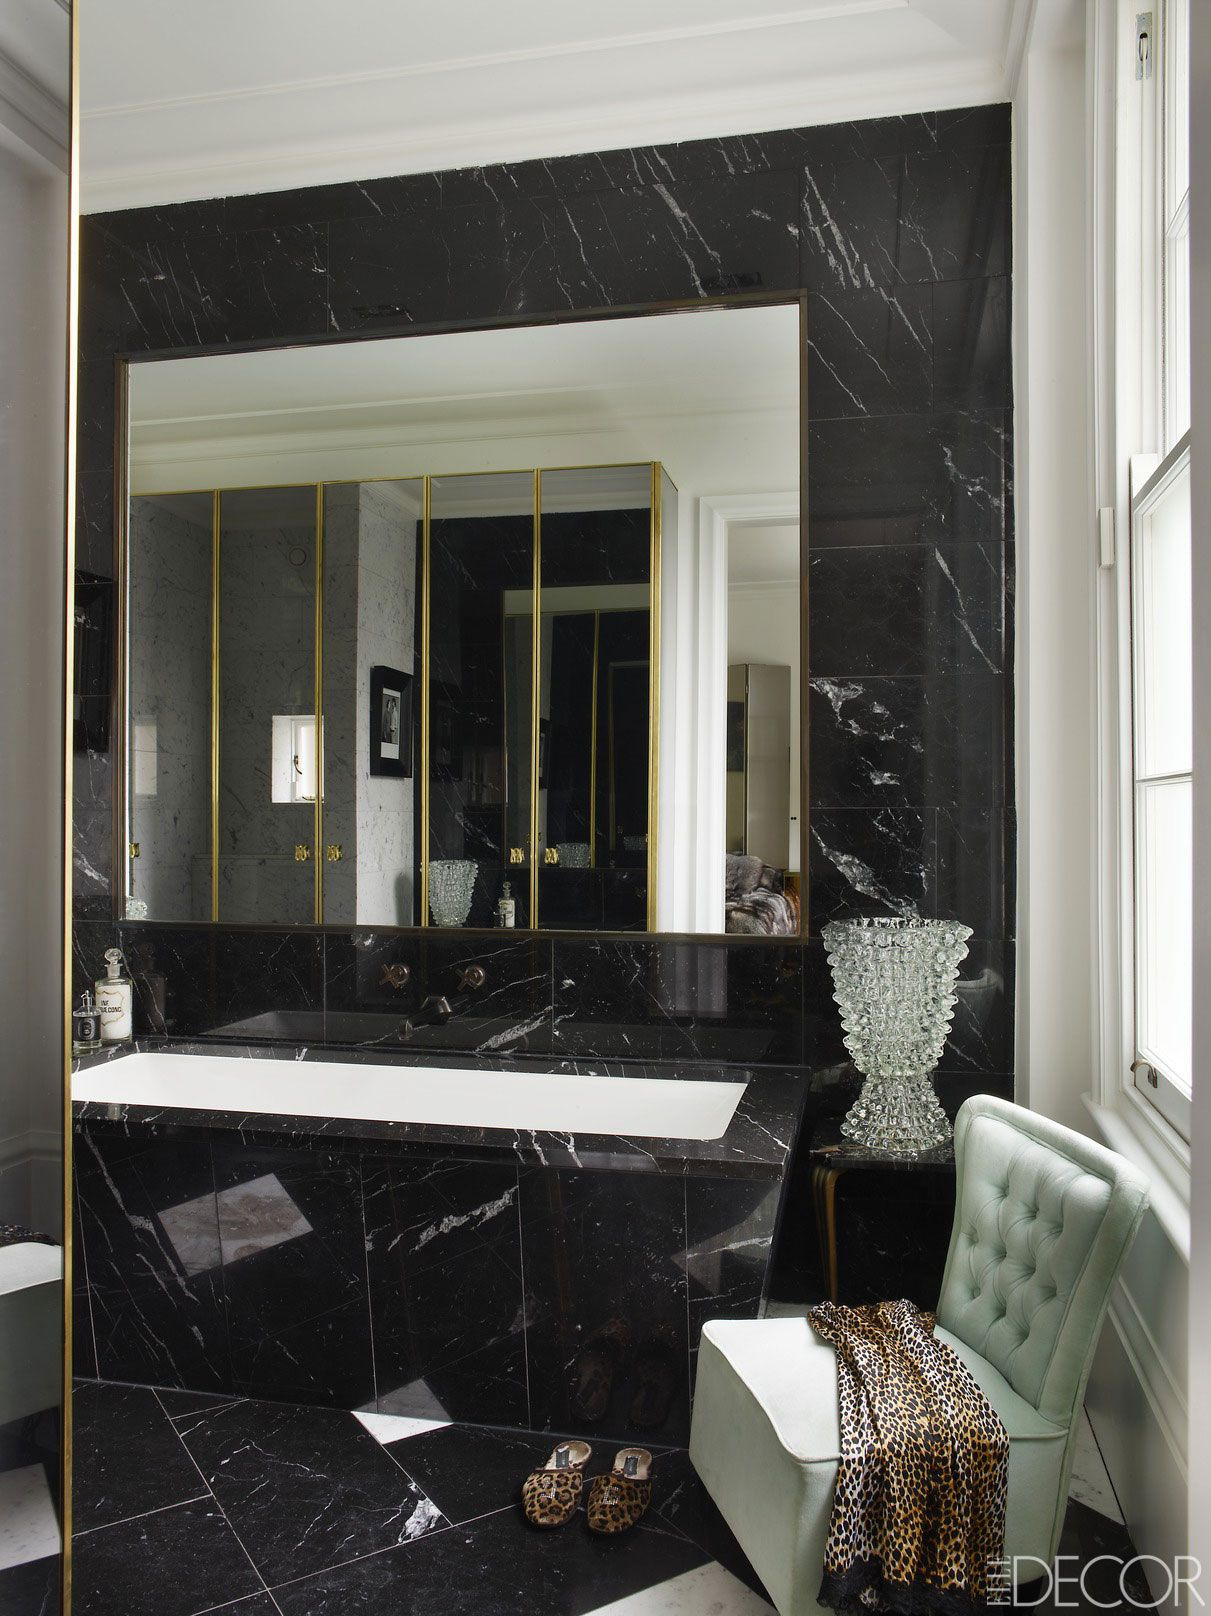 Small Black And White Bathroom Ideas Classy 30 Black And White Bathroom Decor & Design Ideas Inspiration Design